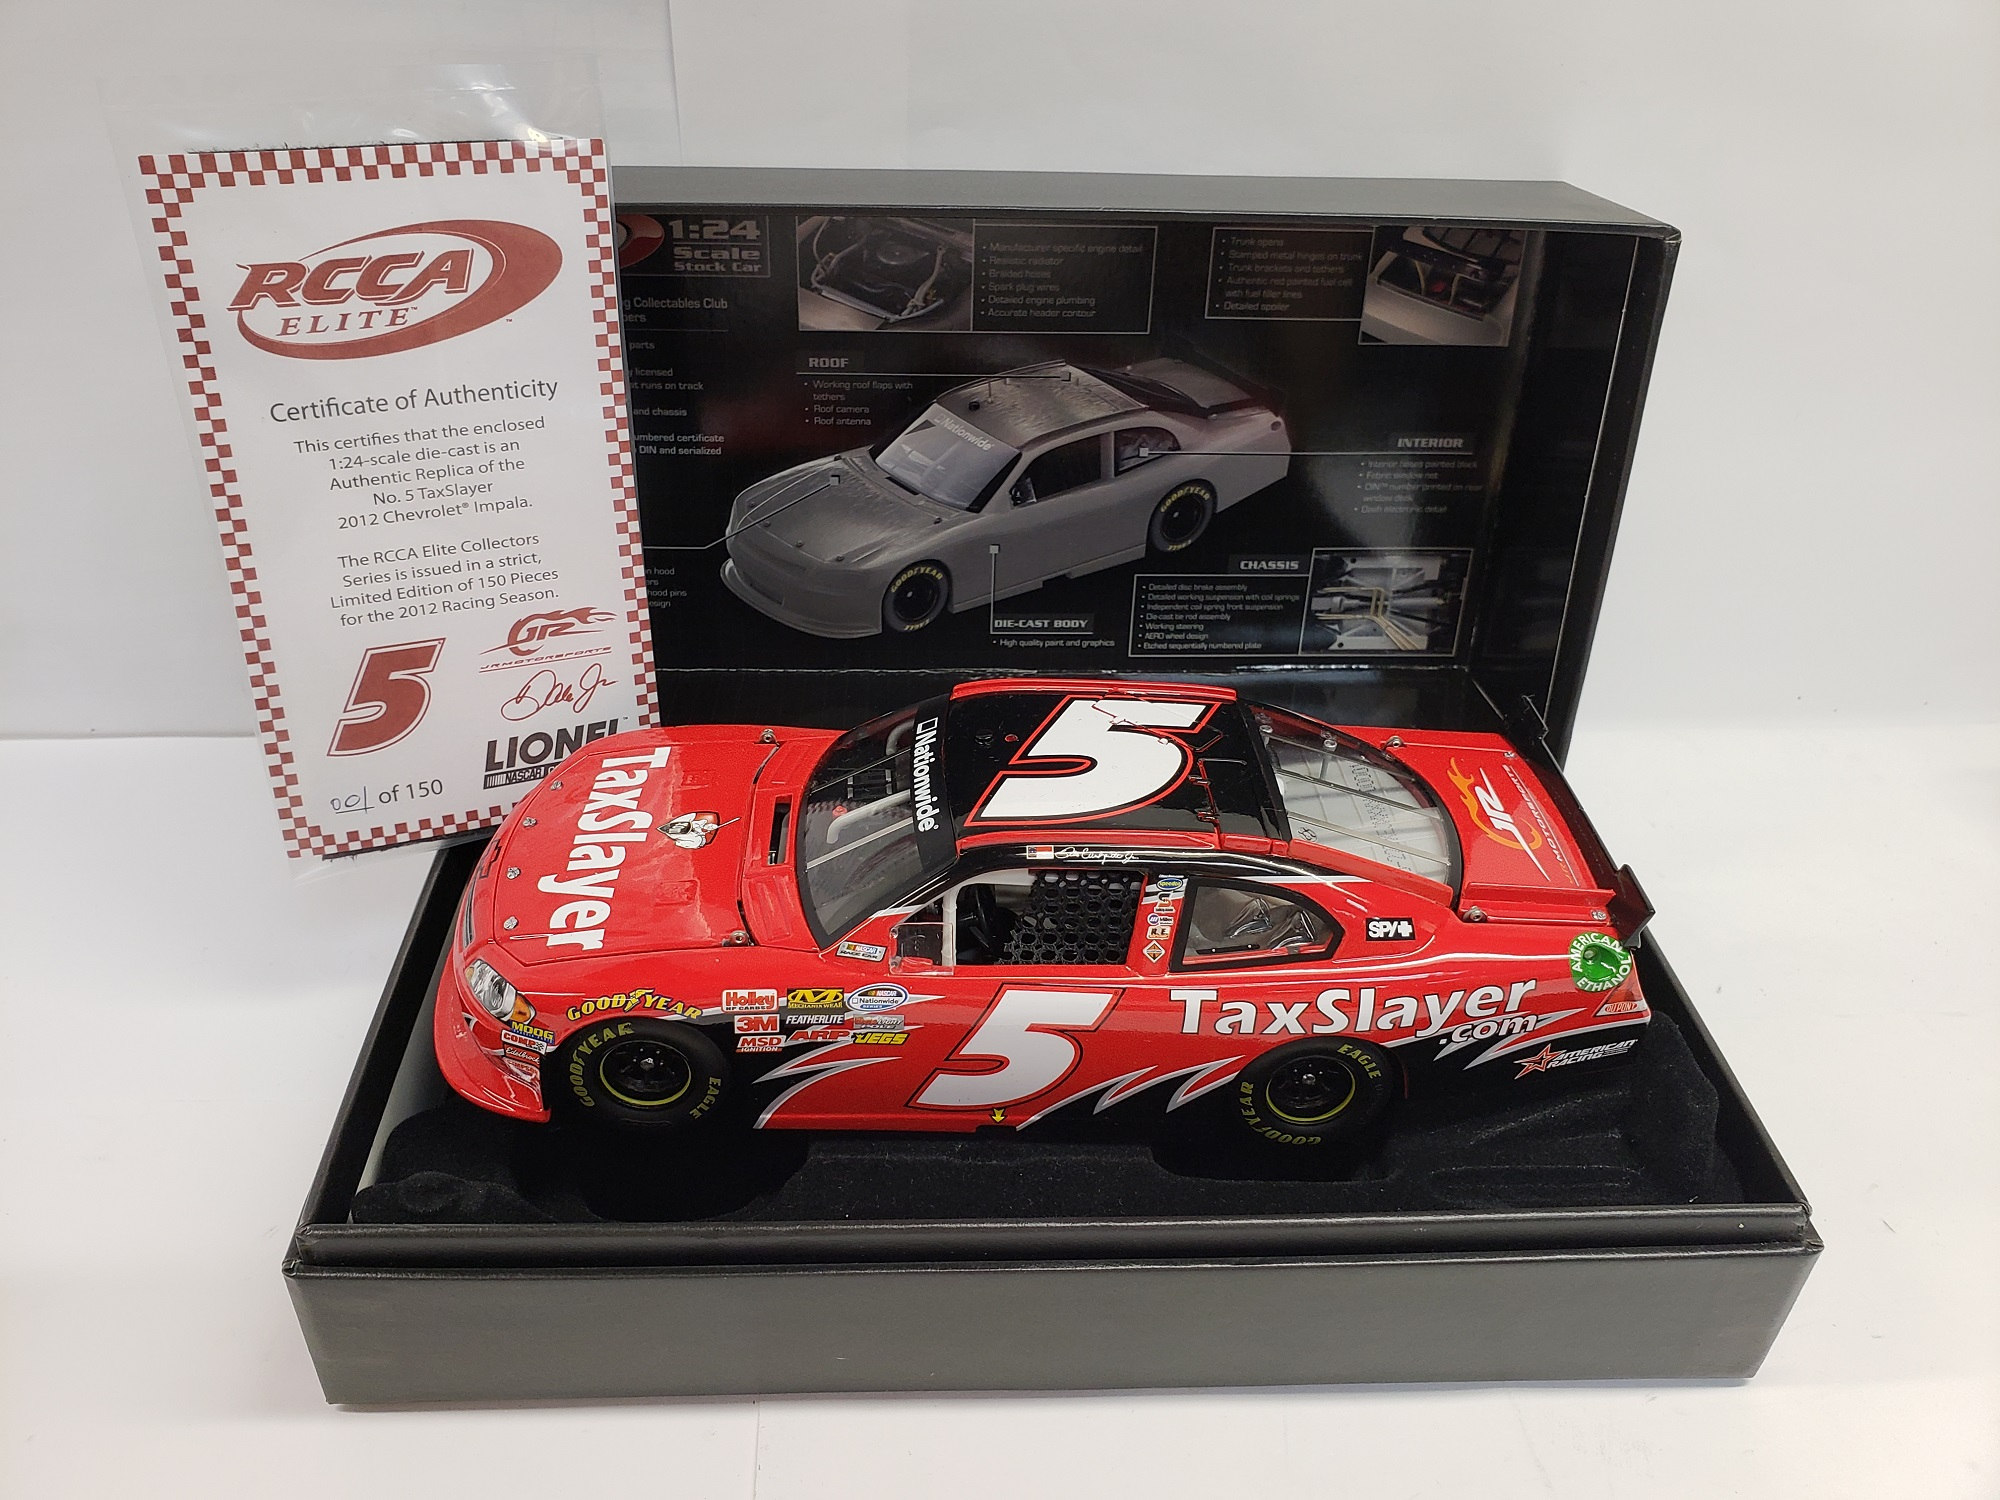 2012 Dale Earnhardt Jr Taxslayer ELITE